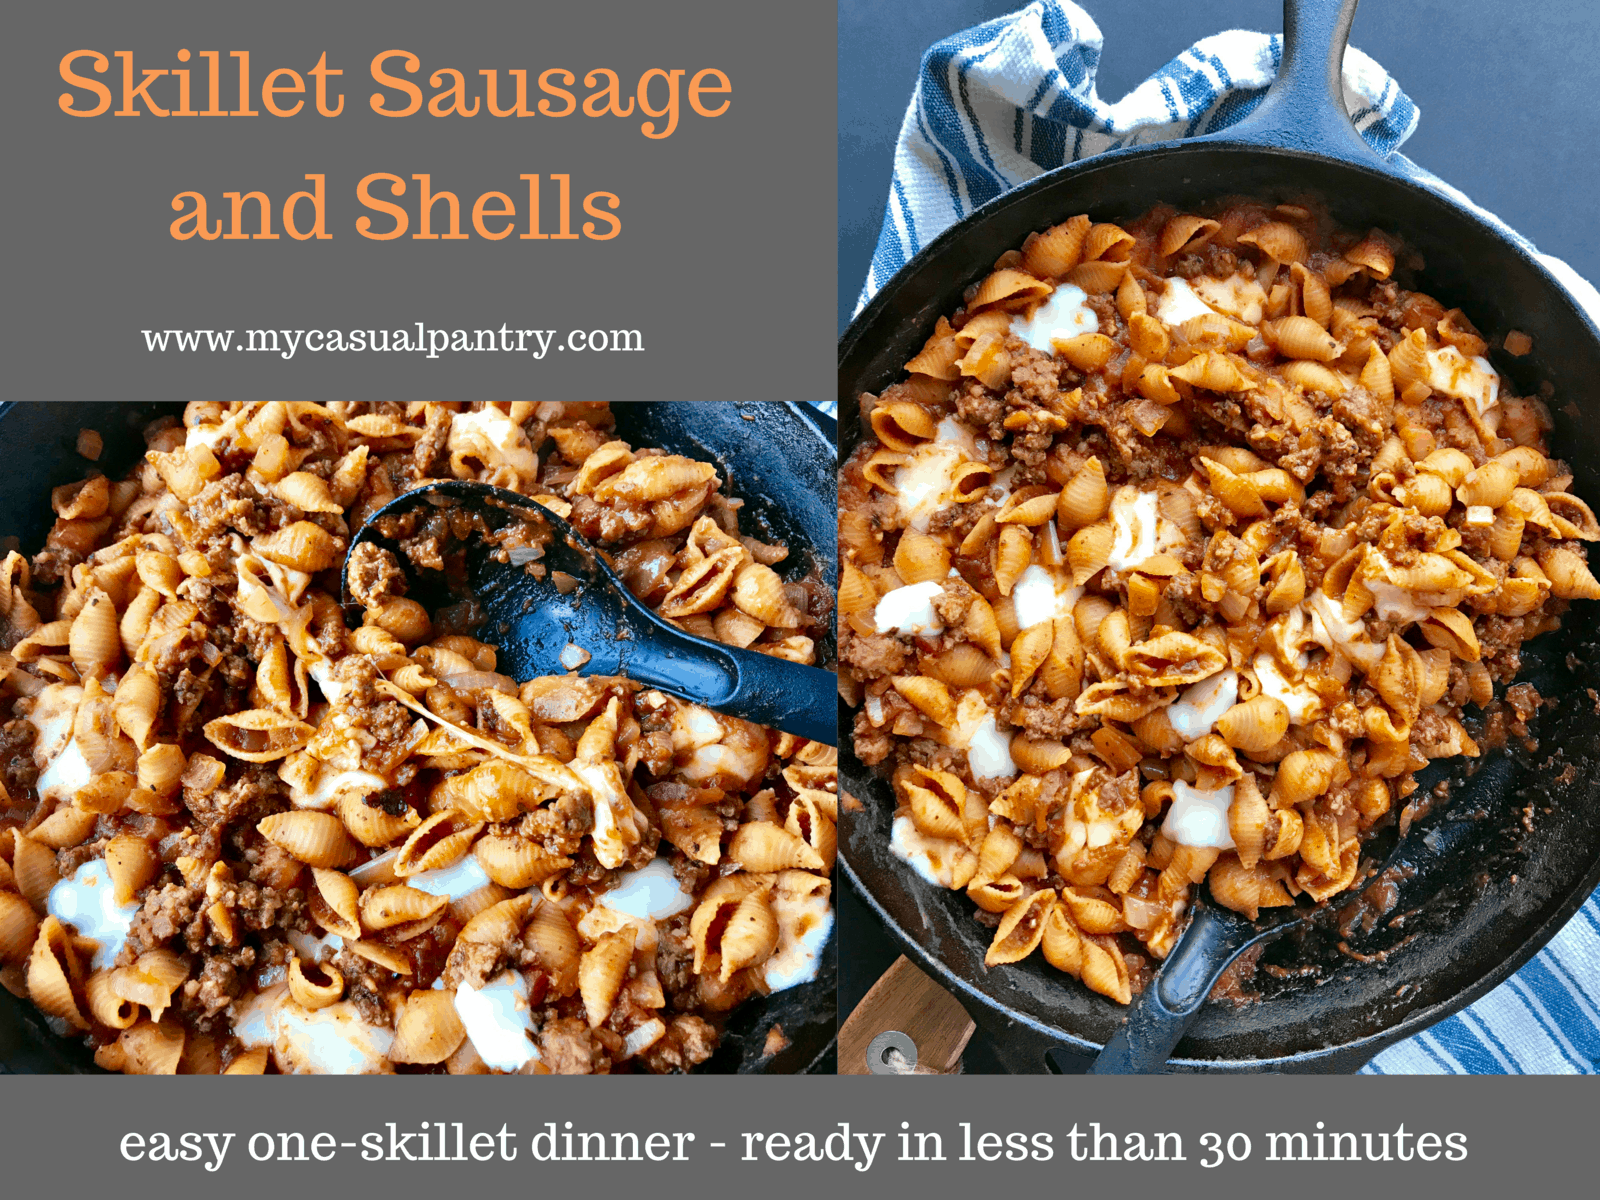 Skillet Sausage and Shells